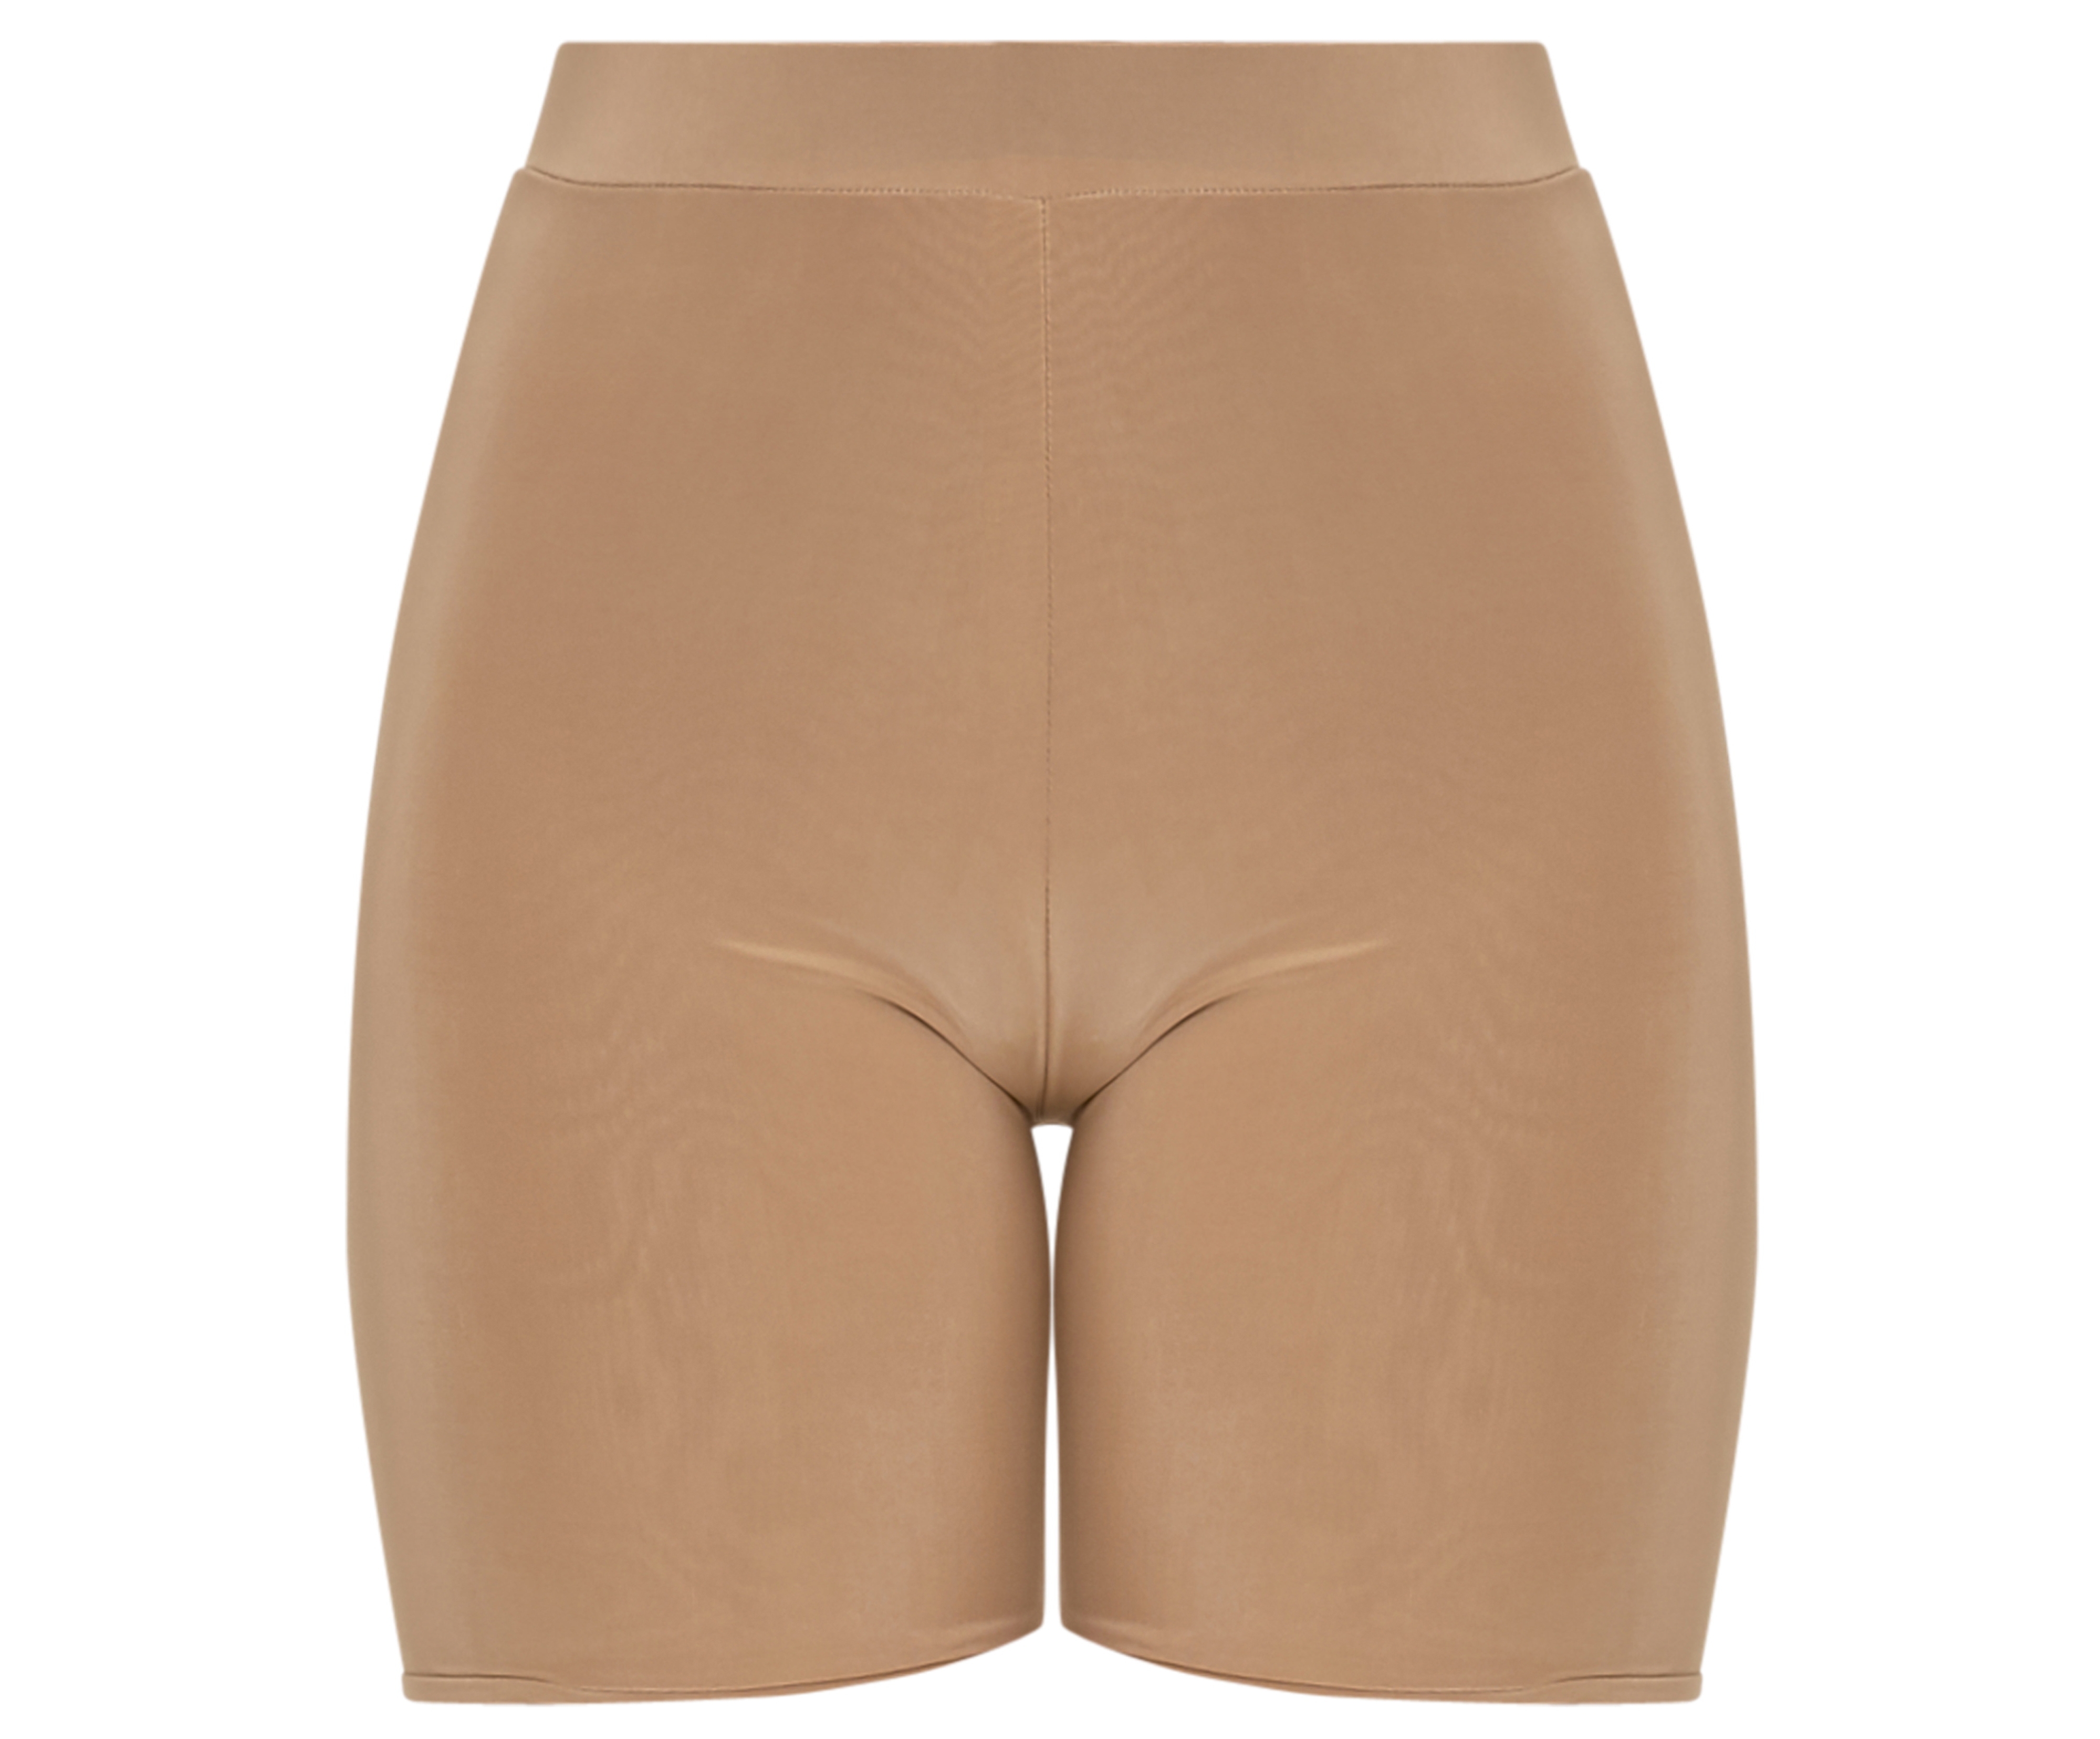 PrettyLittleThing Camel Slinky High Waisted Cycle Shorts